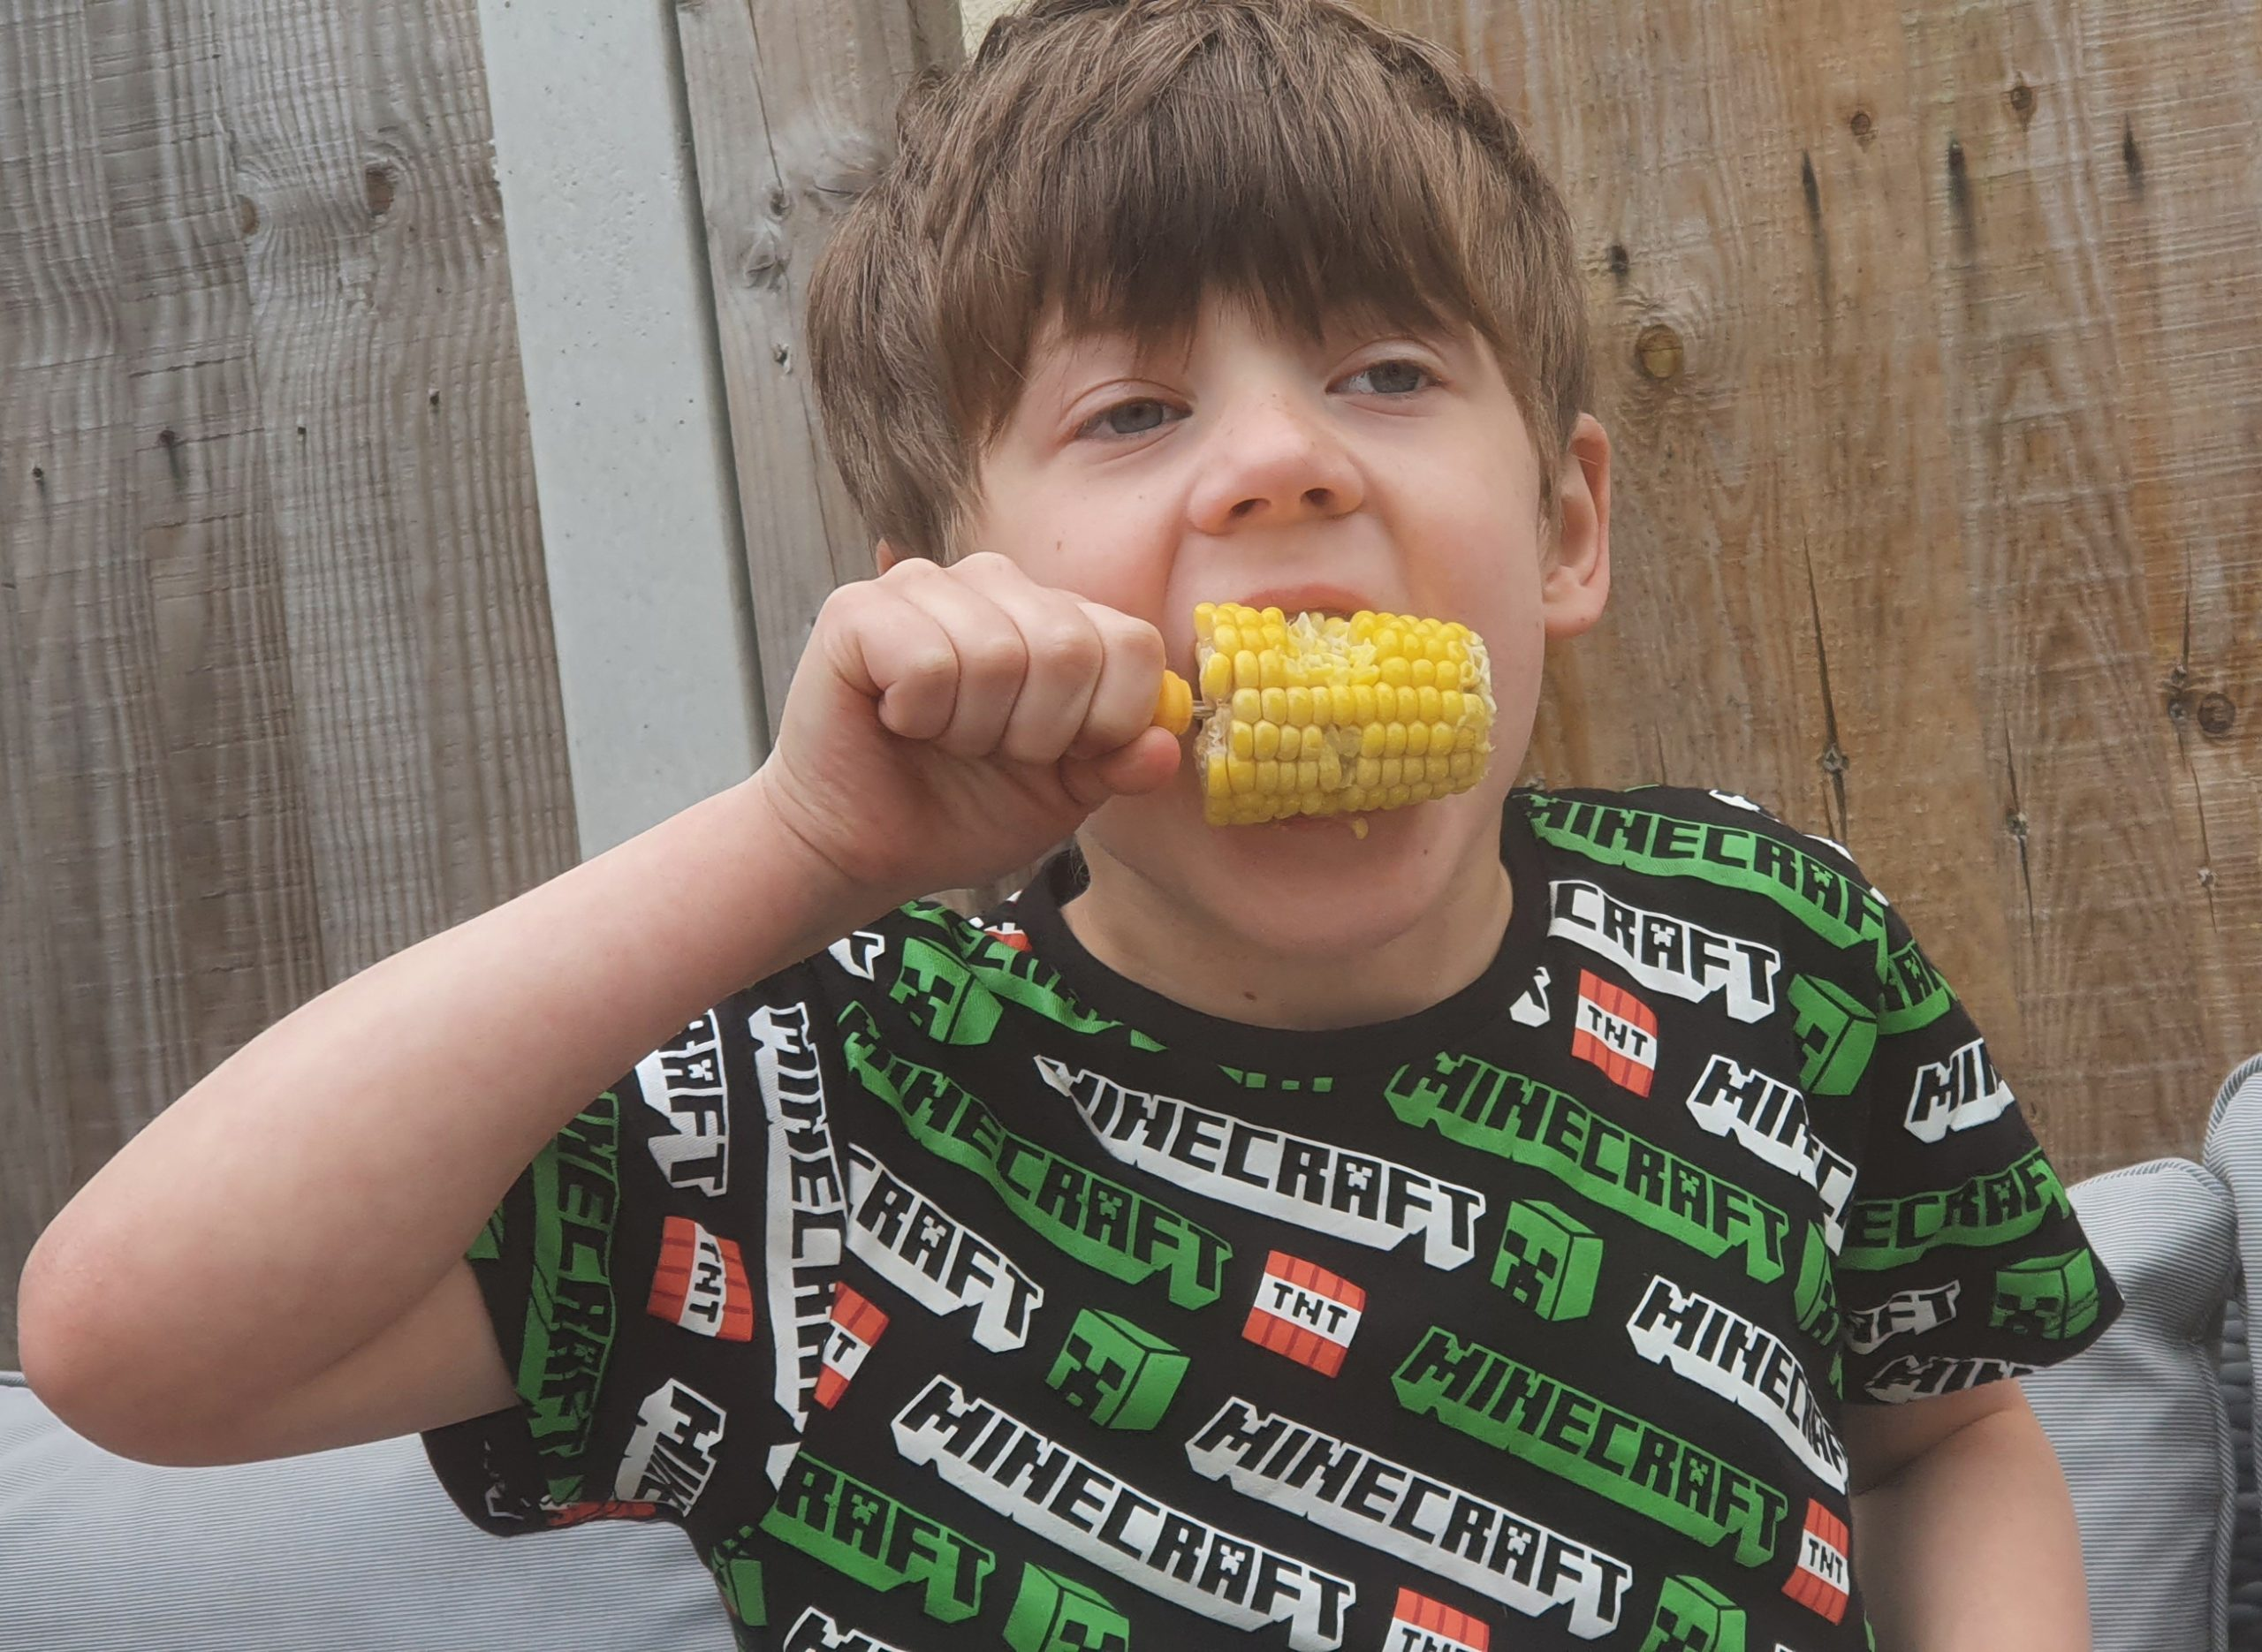 a child in a Minecraft t-shirt eating a corn on the cob